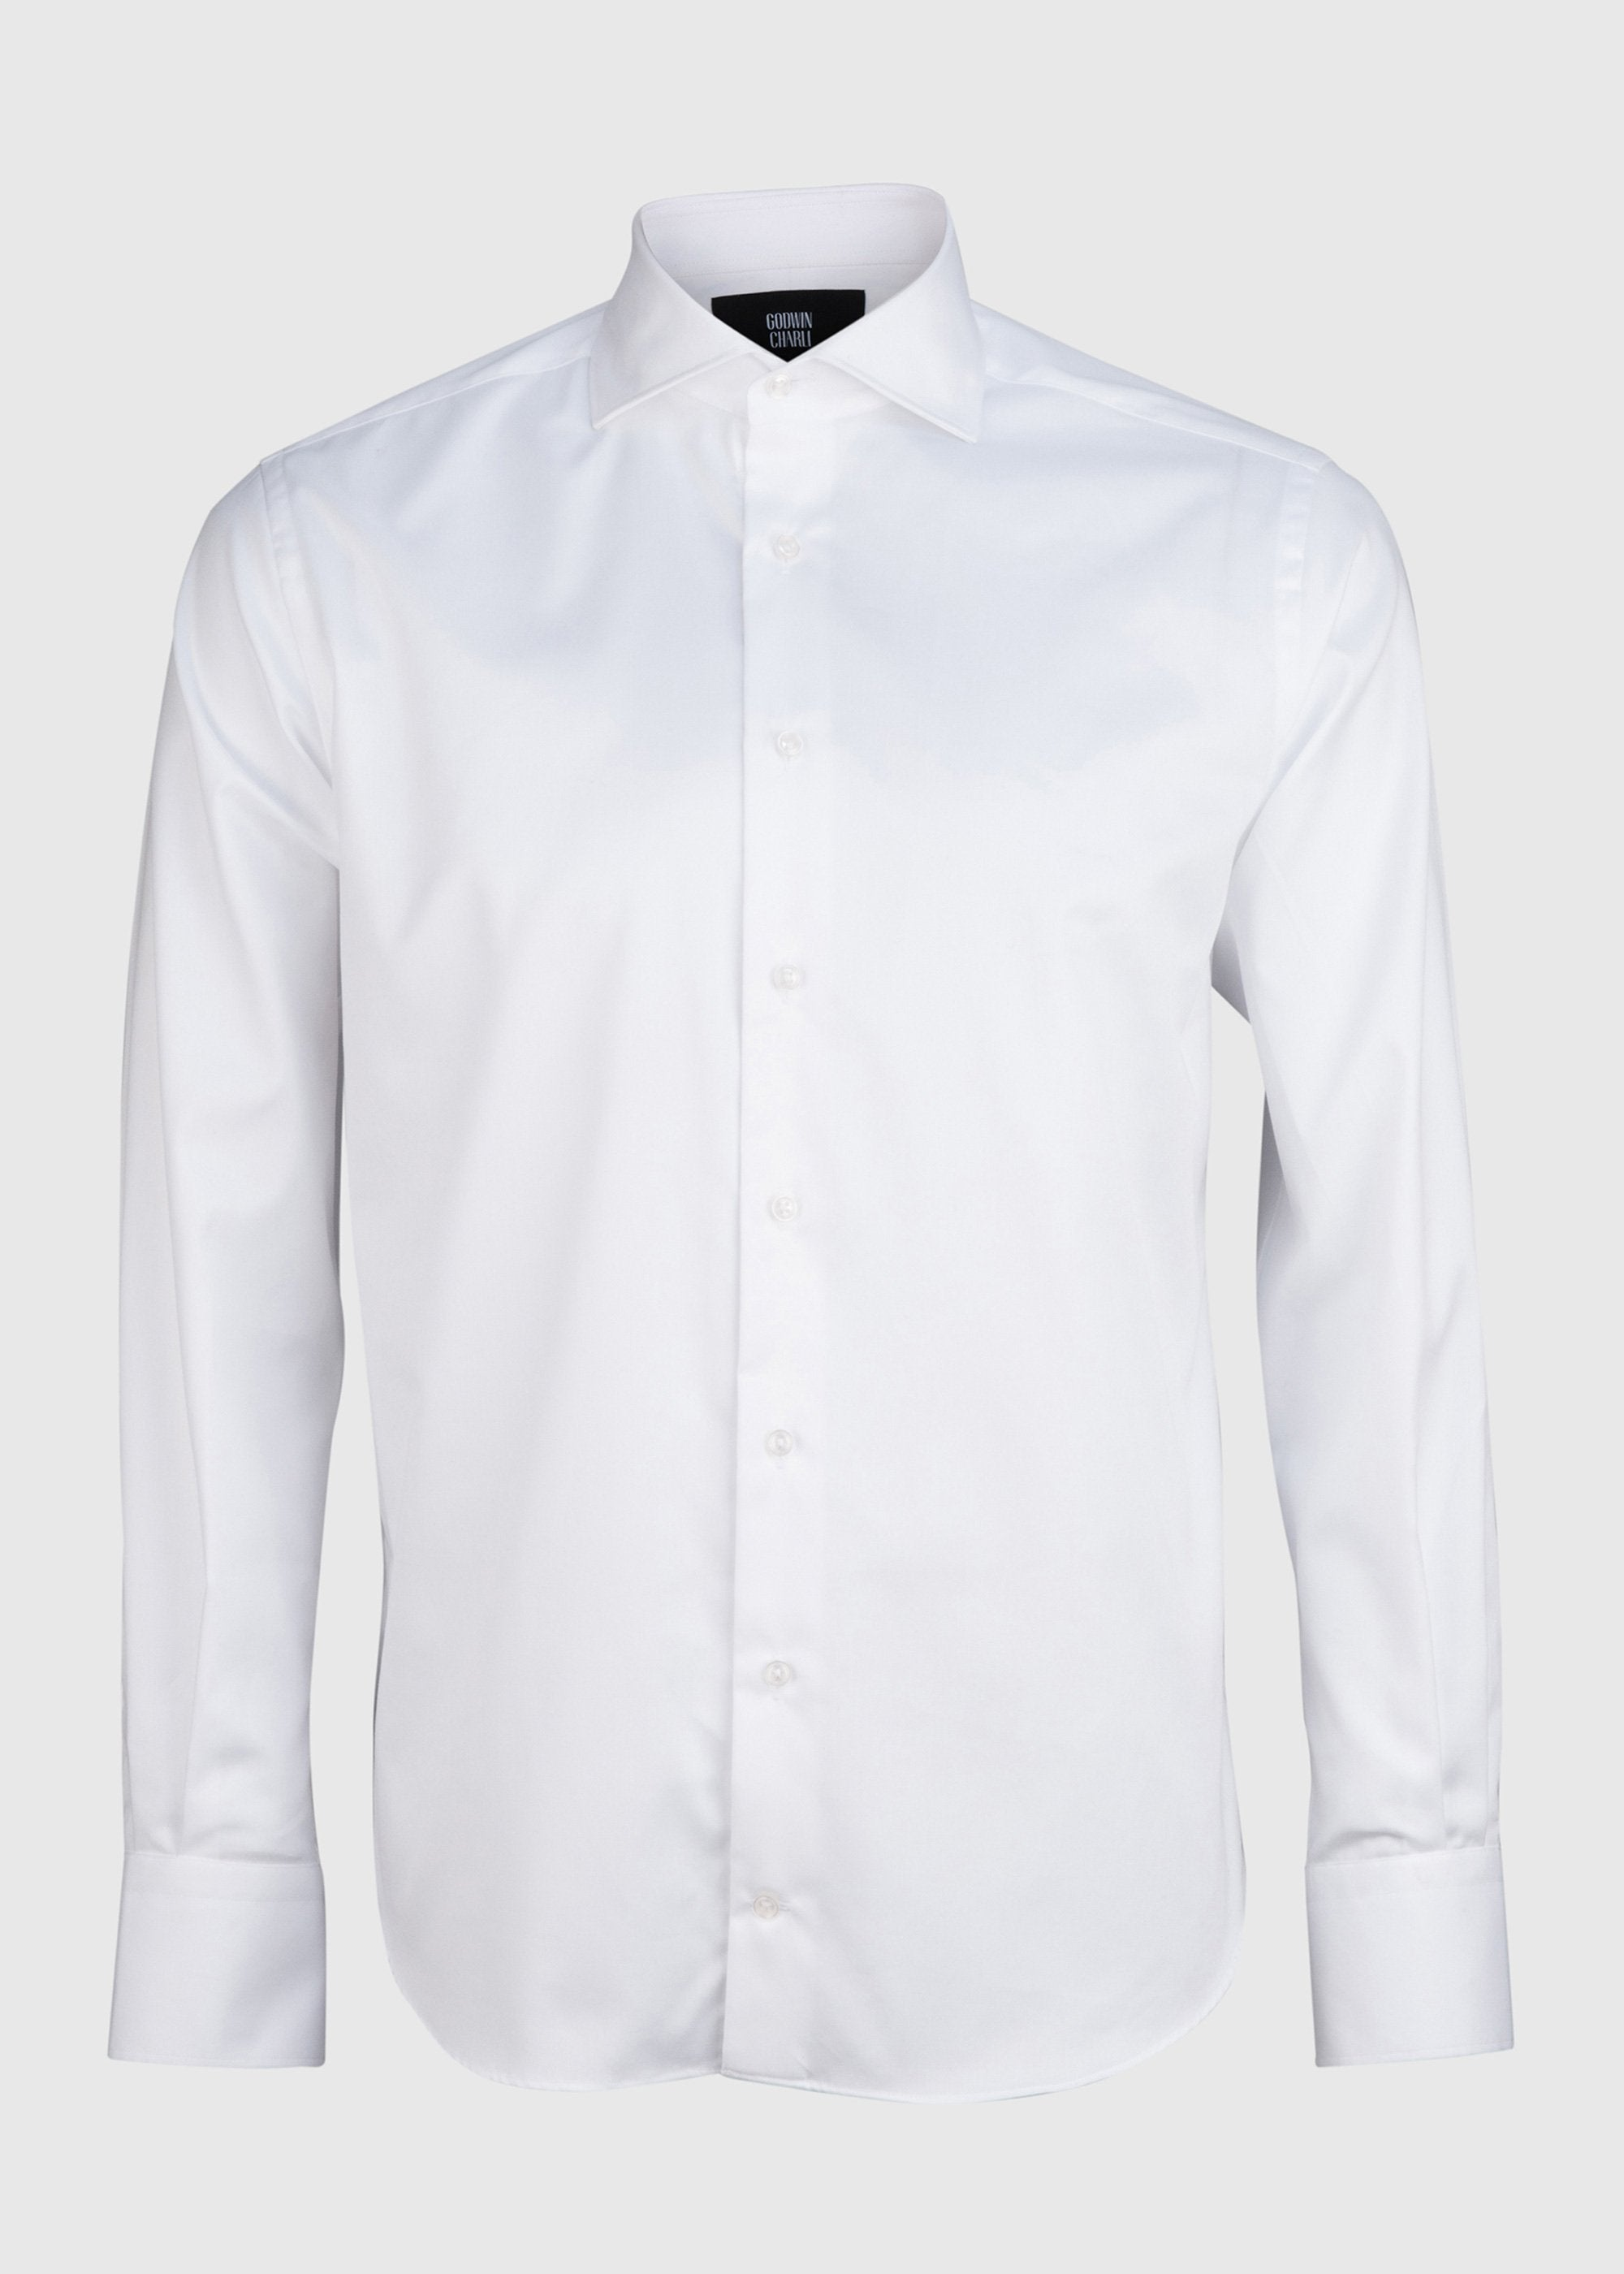 Pilot (BC) Shirt - White Twill